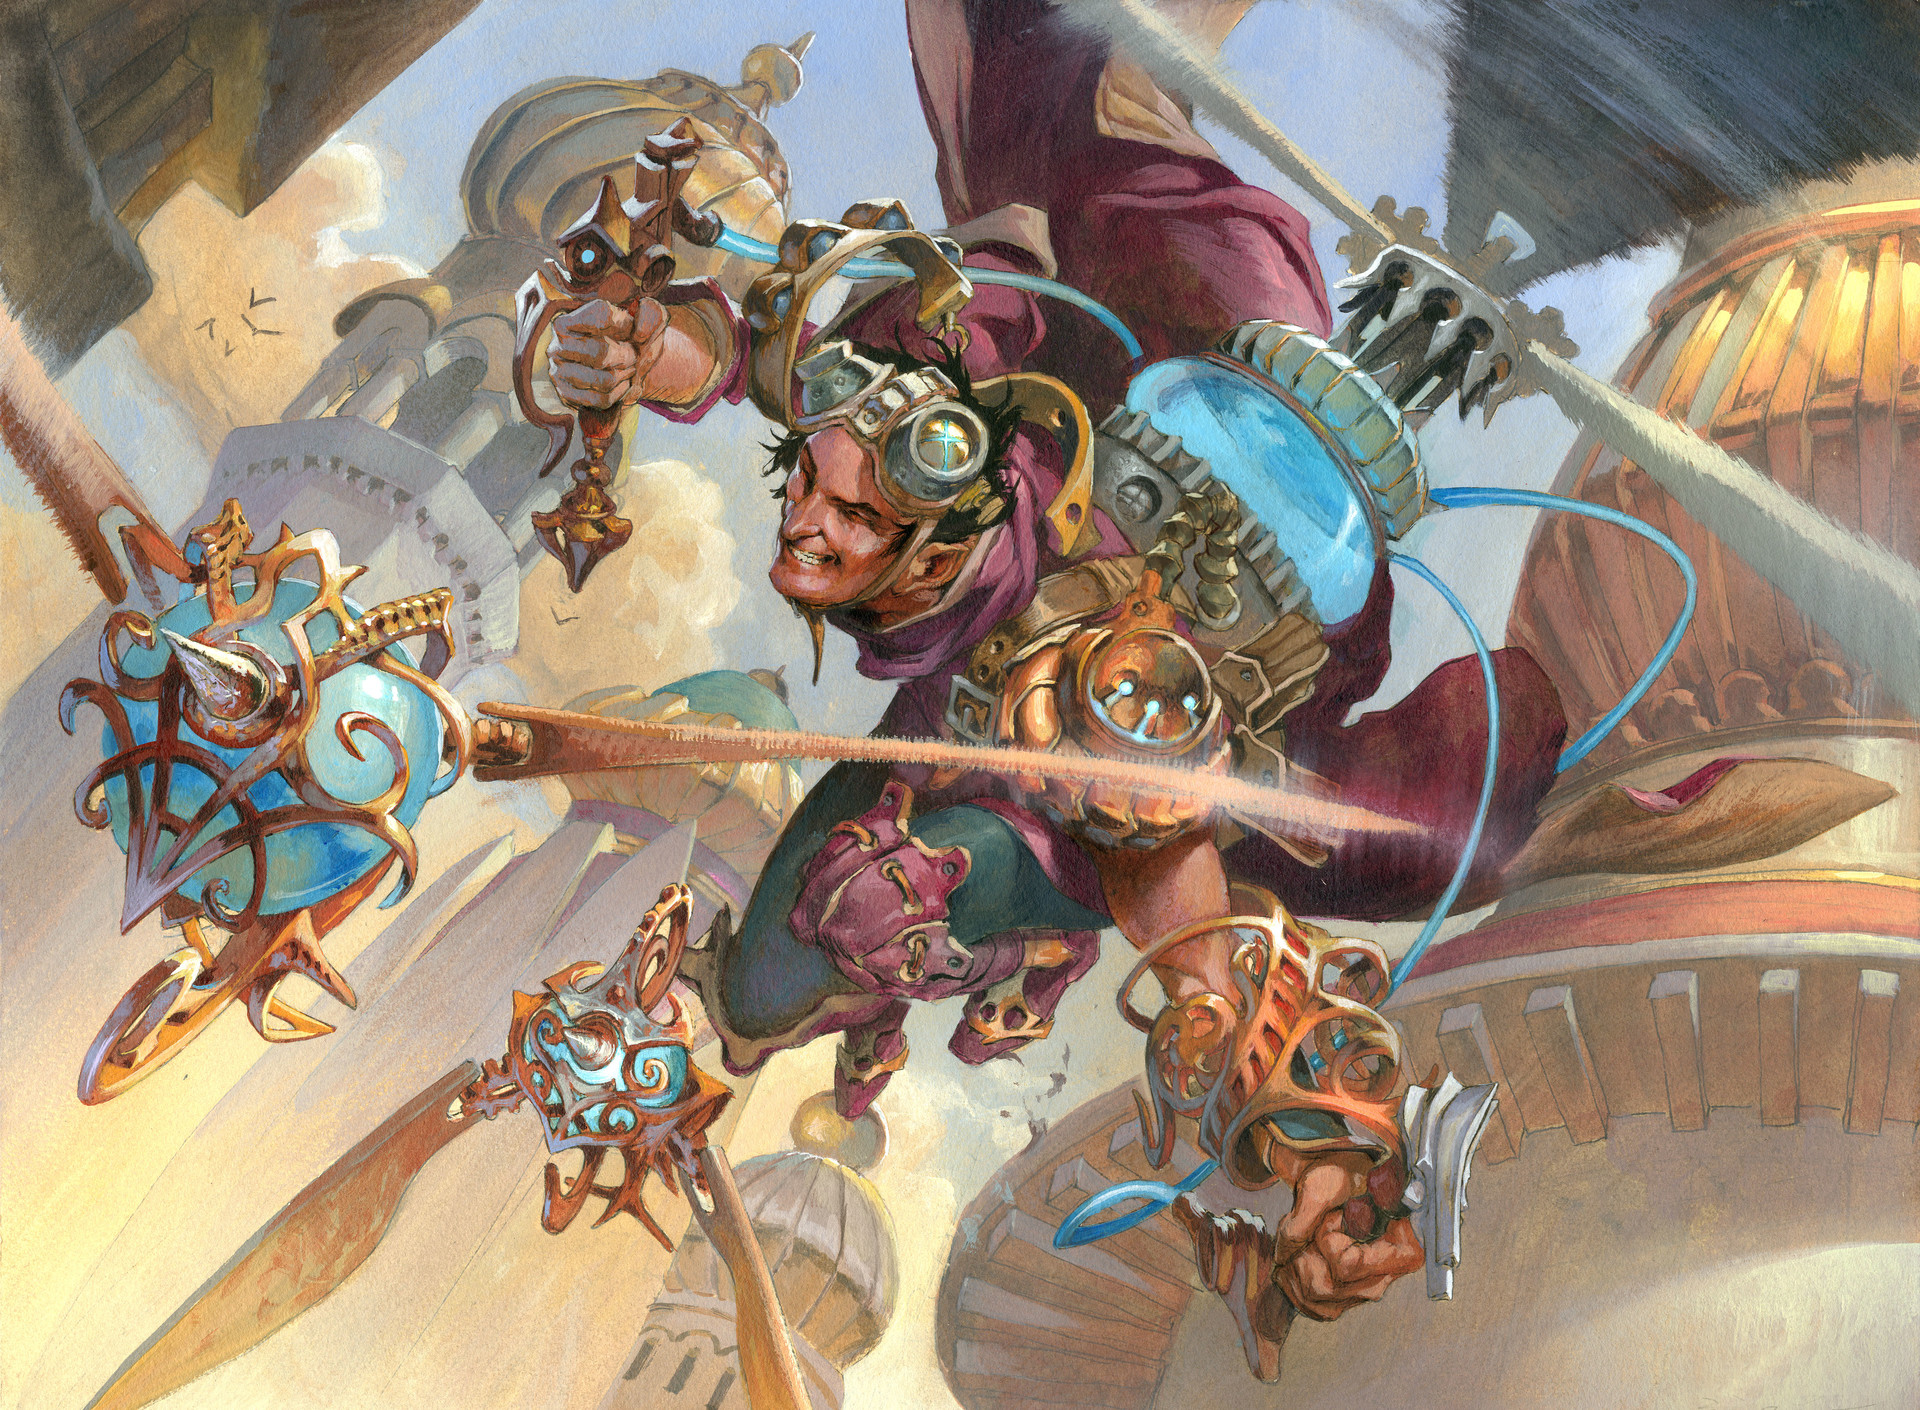 Jesper Ejsing Acrylic Painting Experimental Aviator Magic the Gathering art